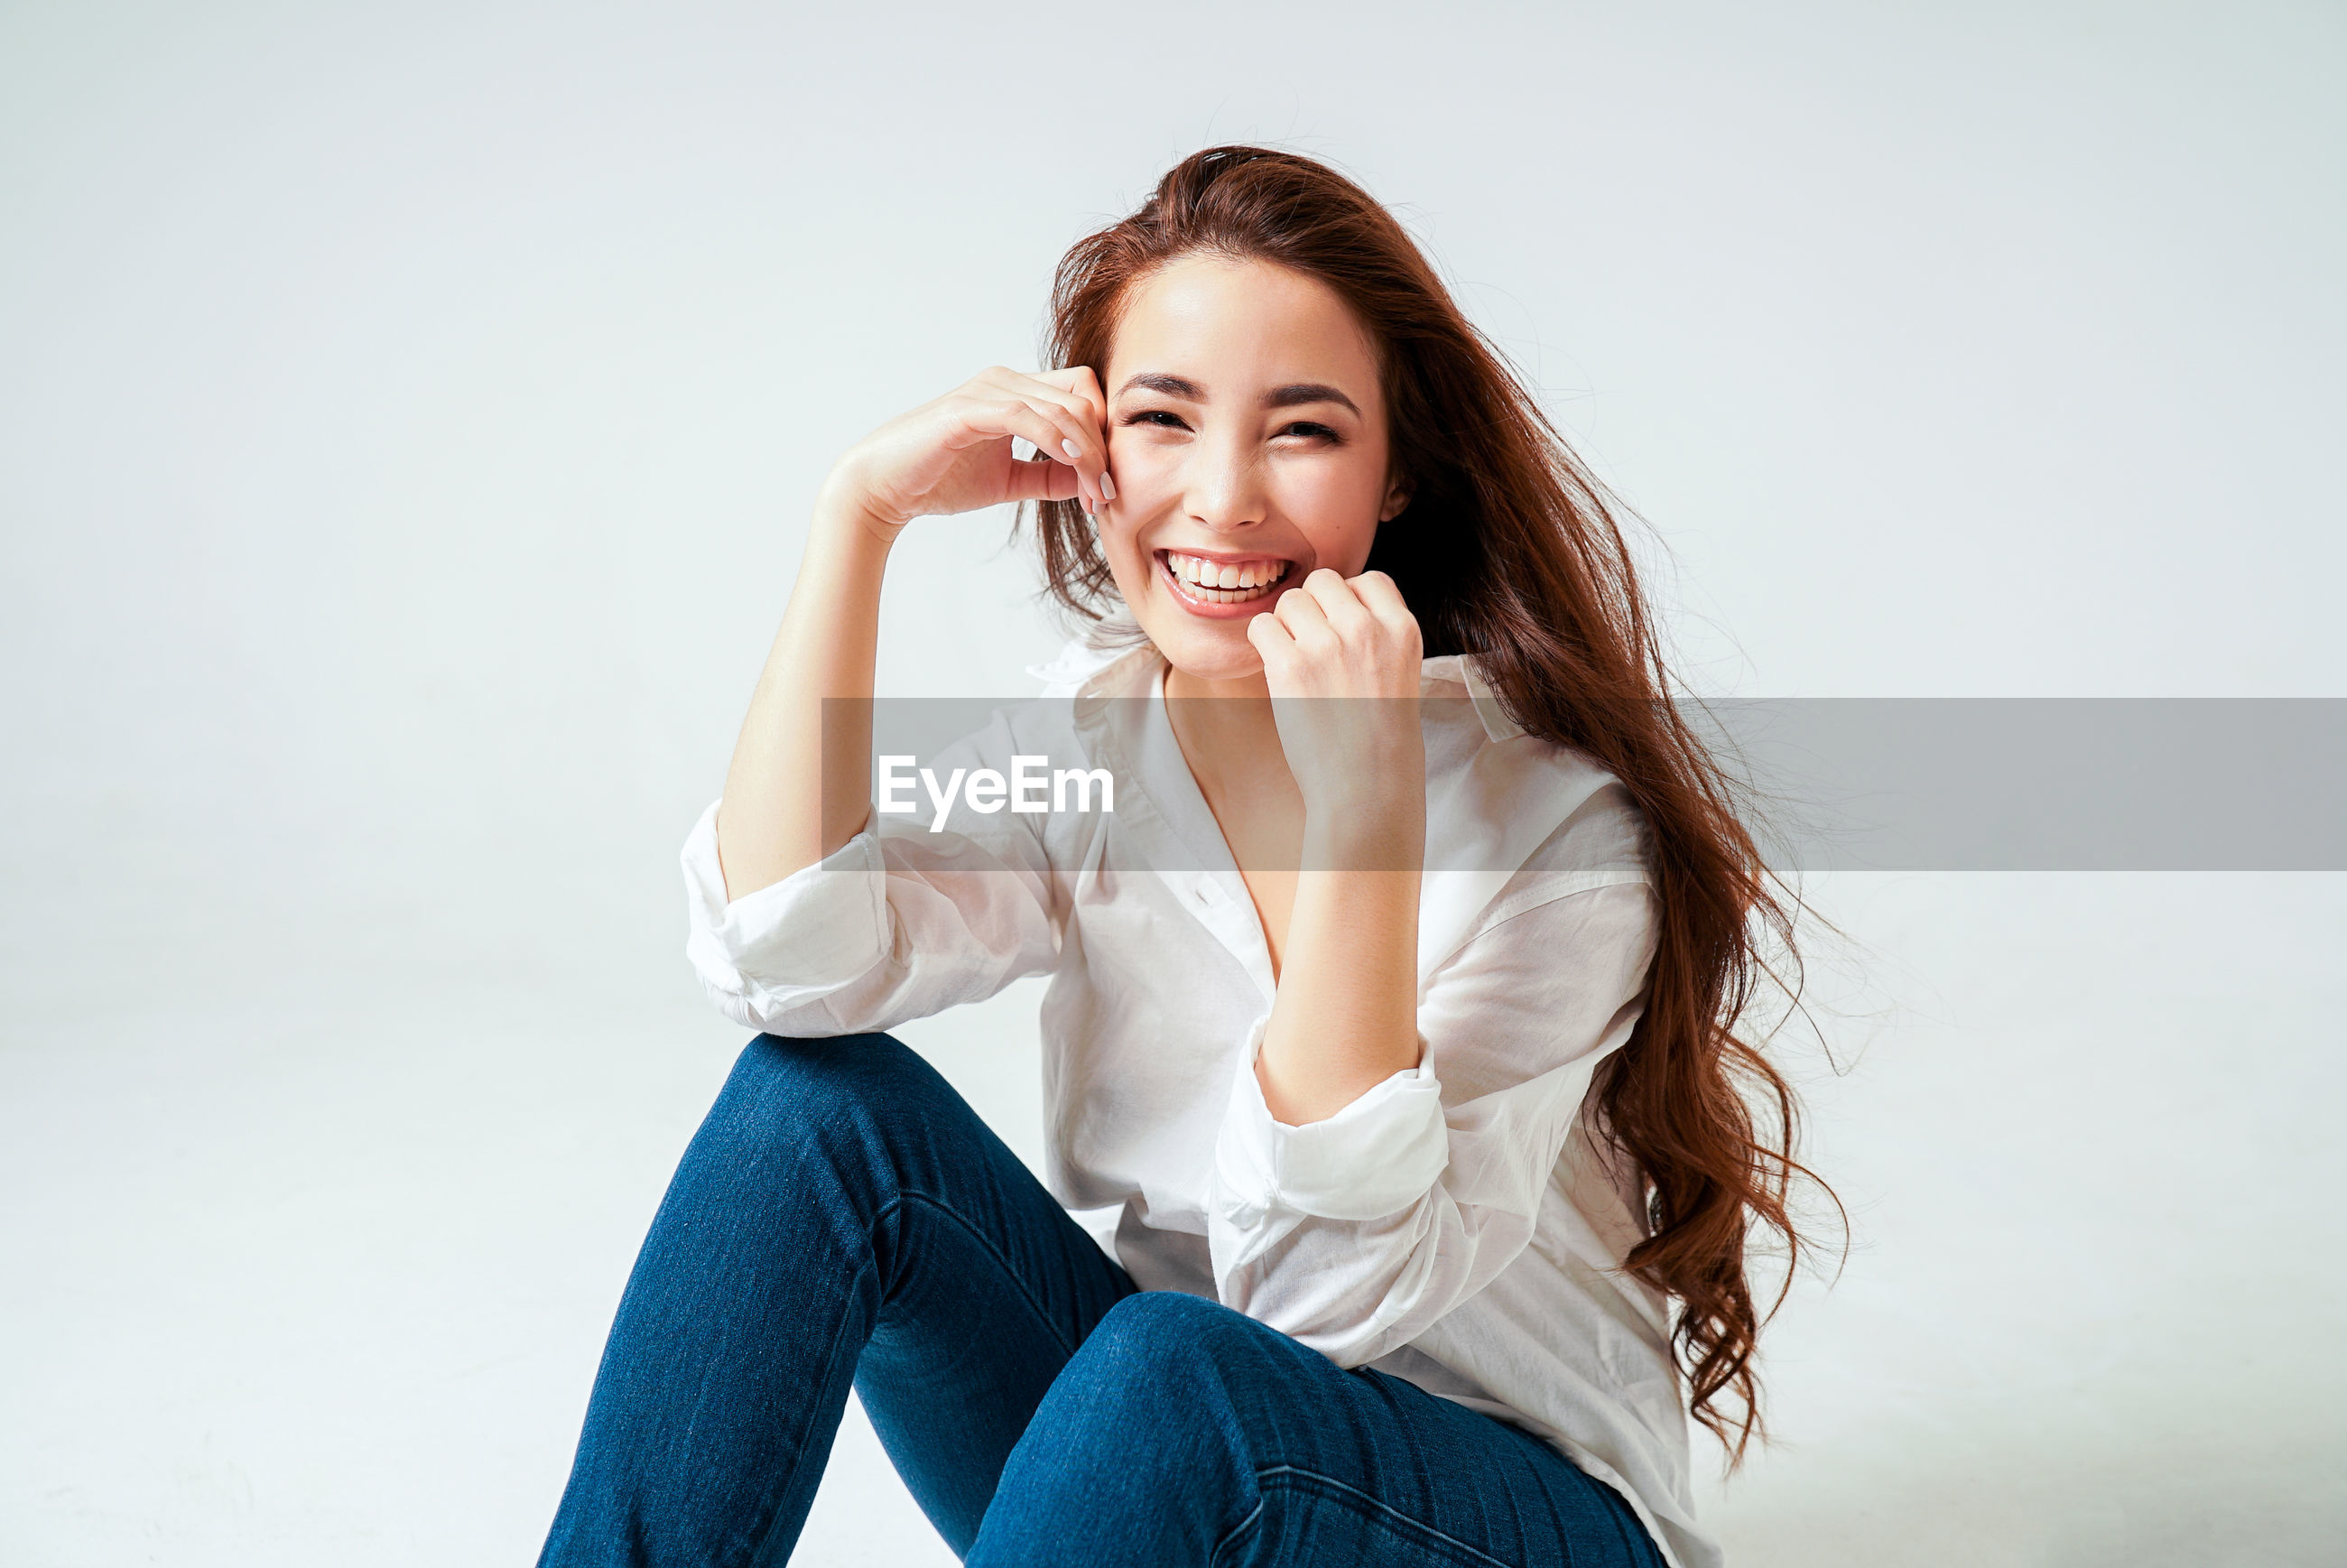 Portrait of smiling young woman sitting against white background